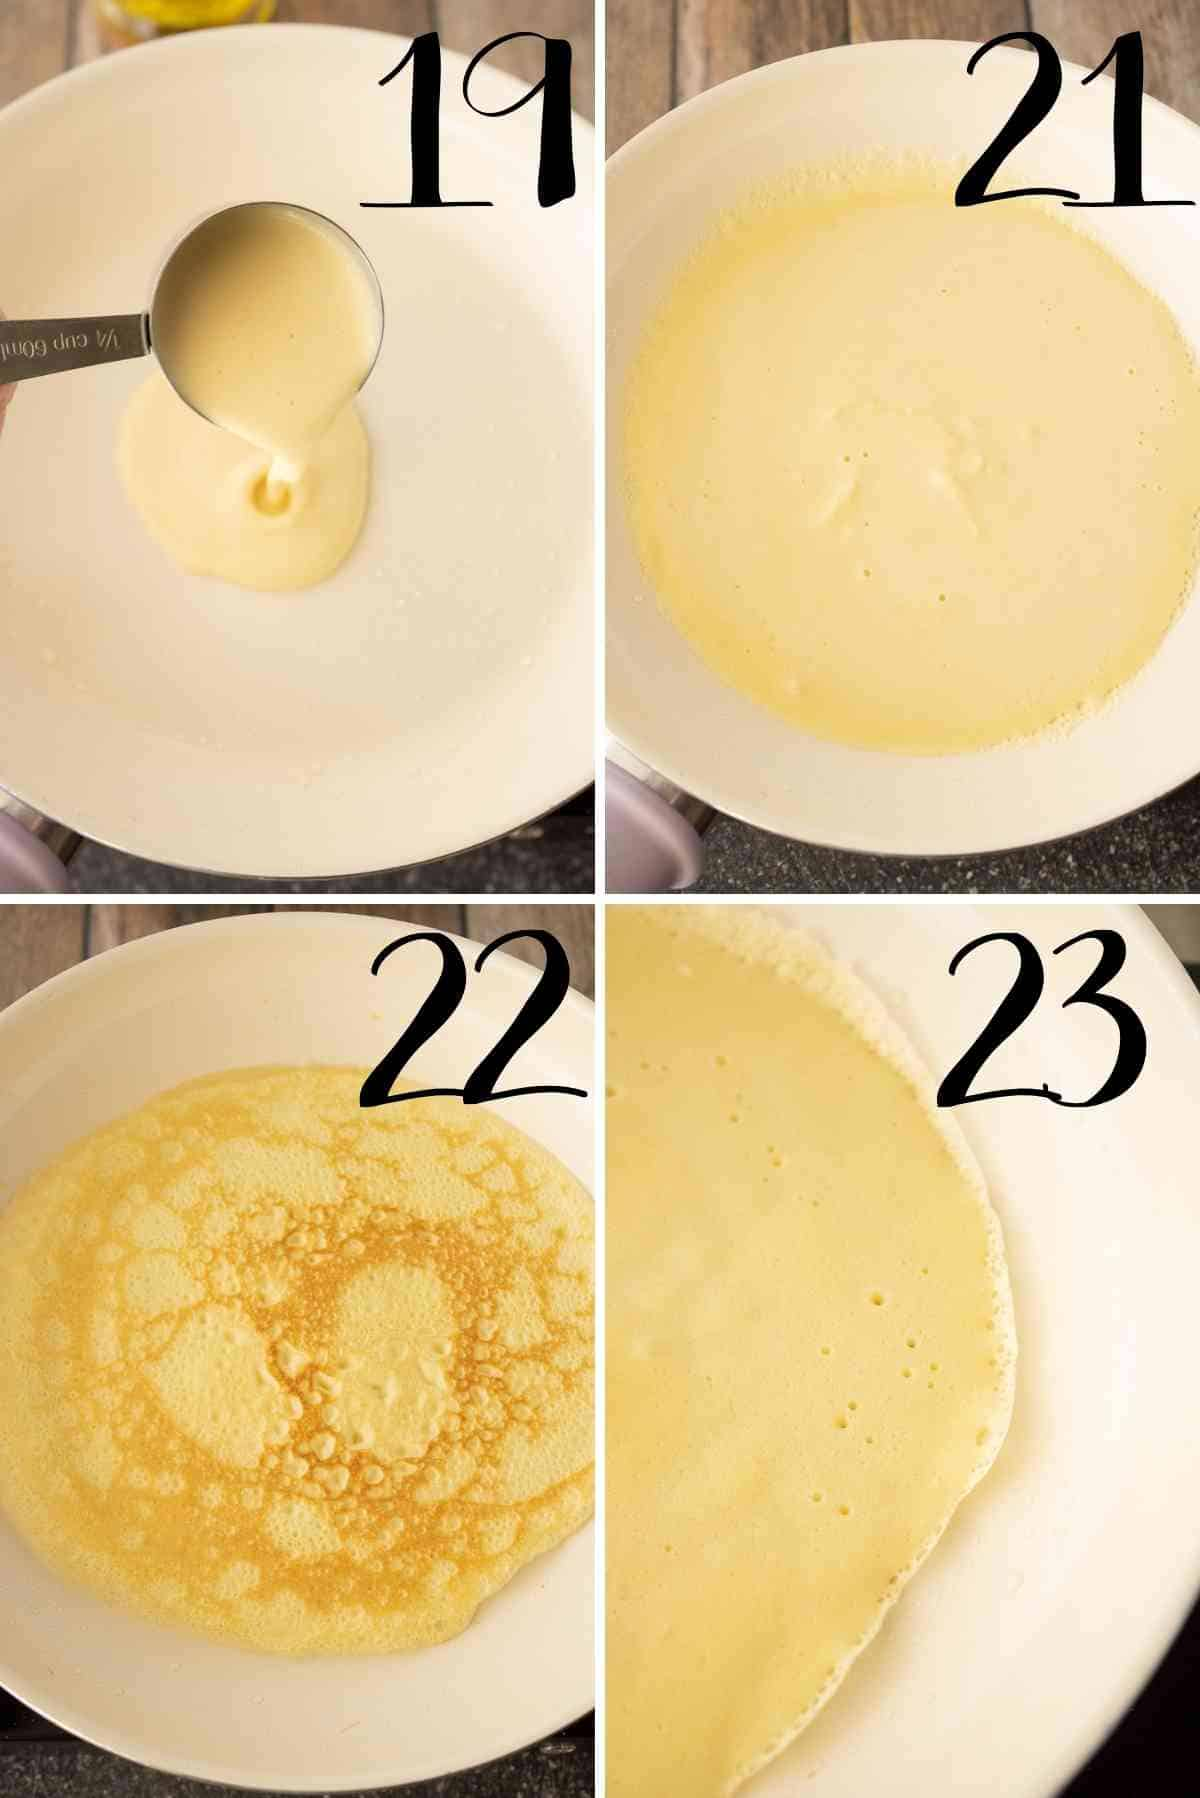 Cooking crepes in a frying pan.